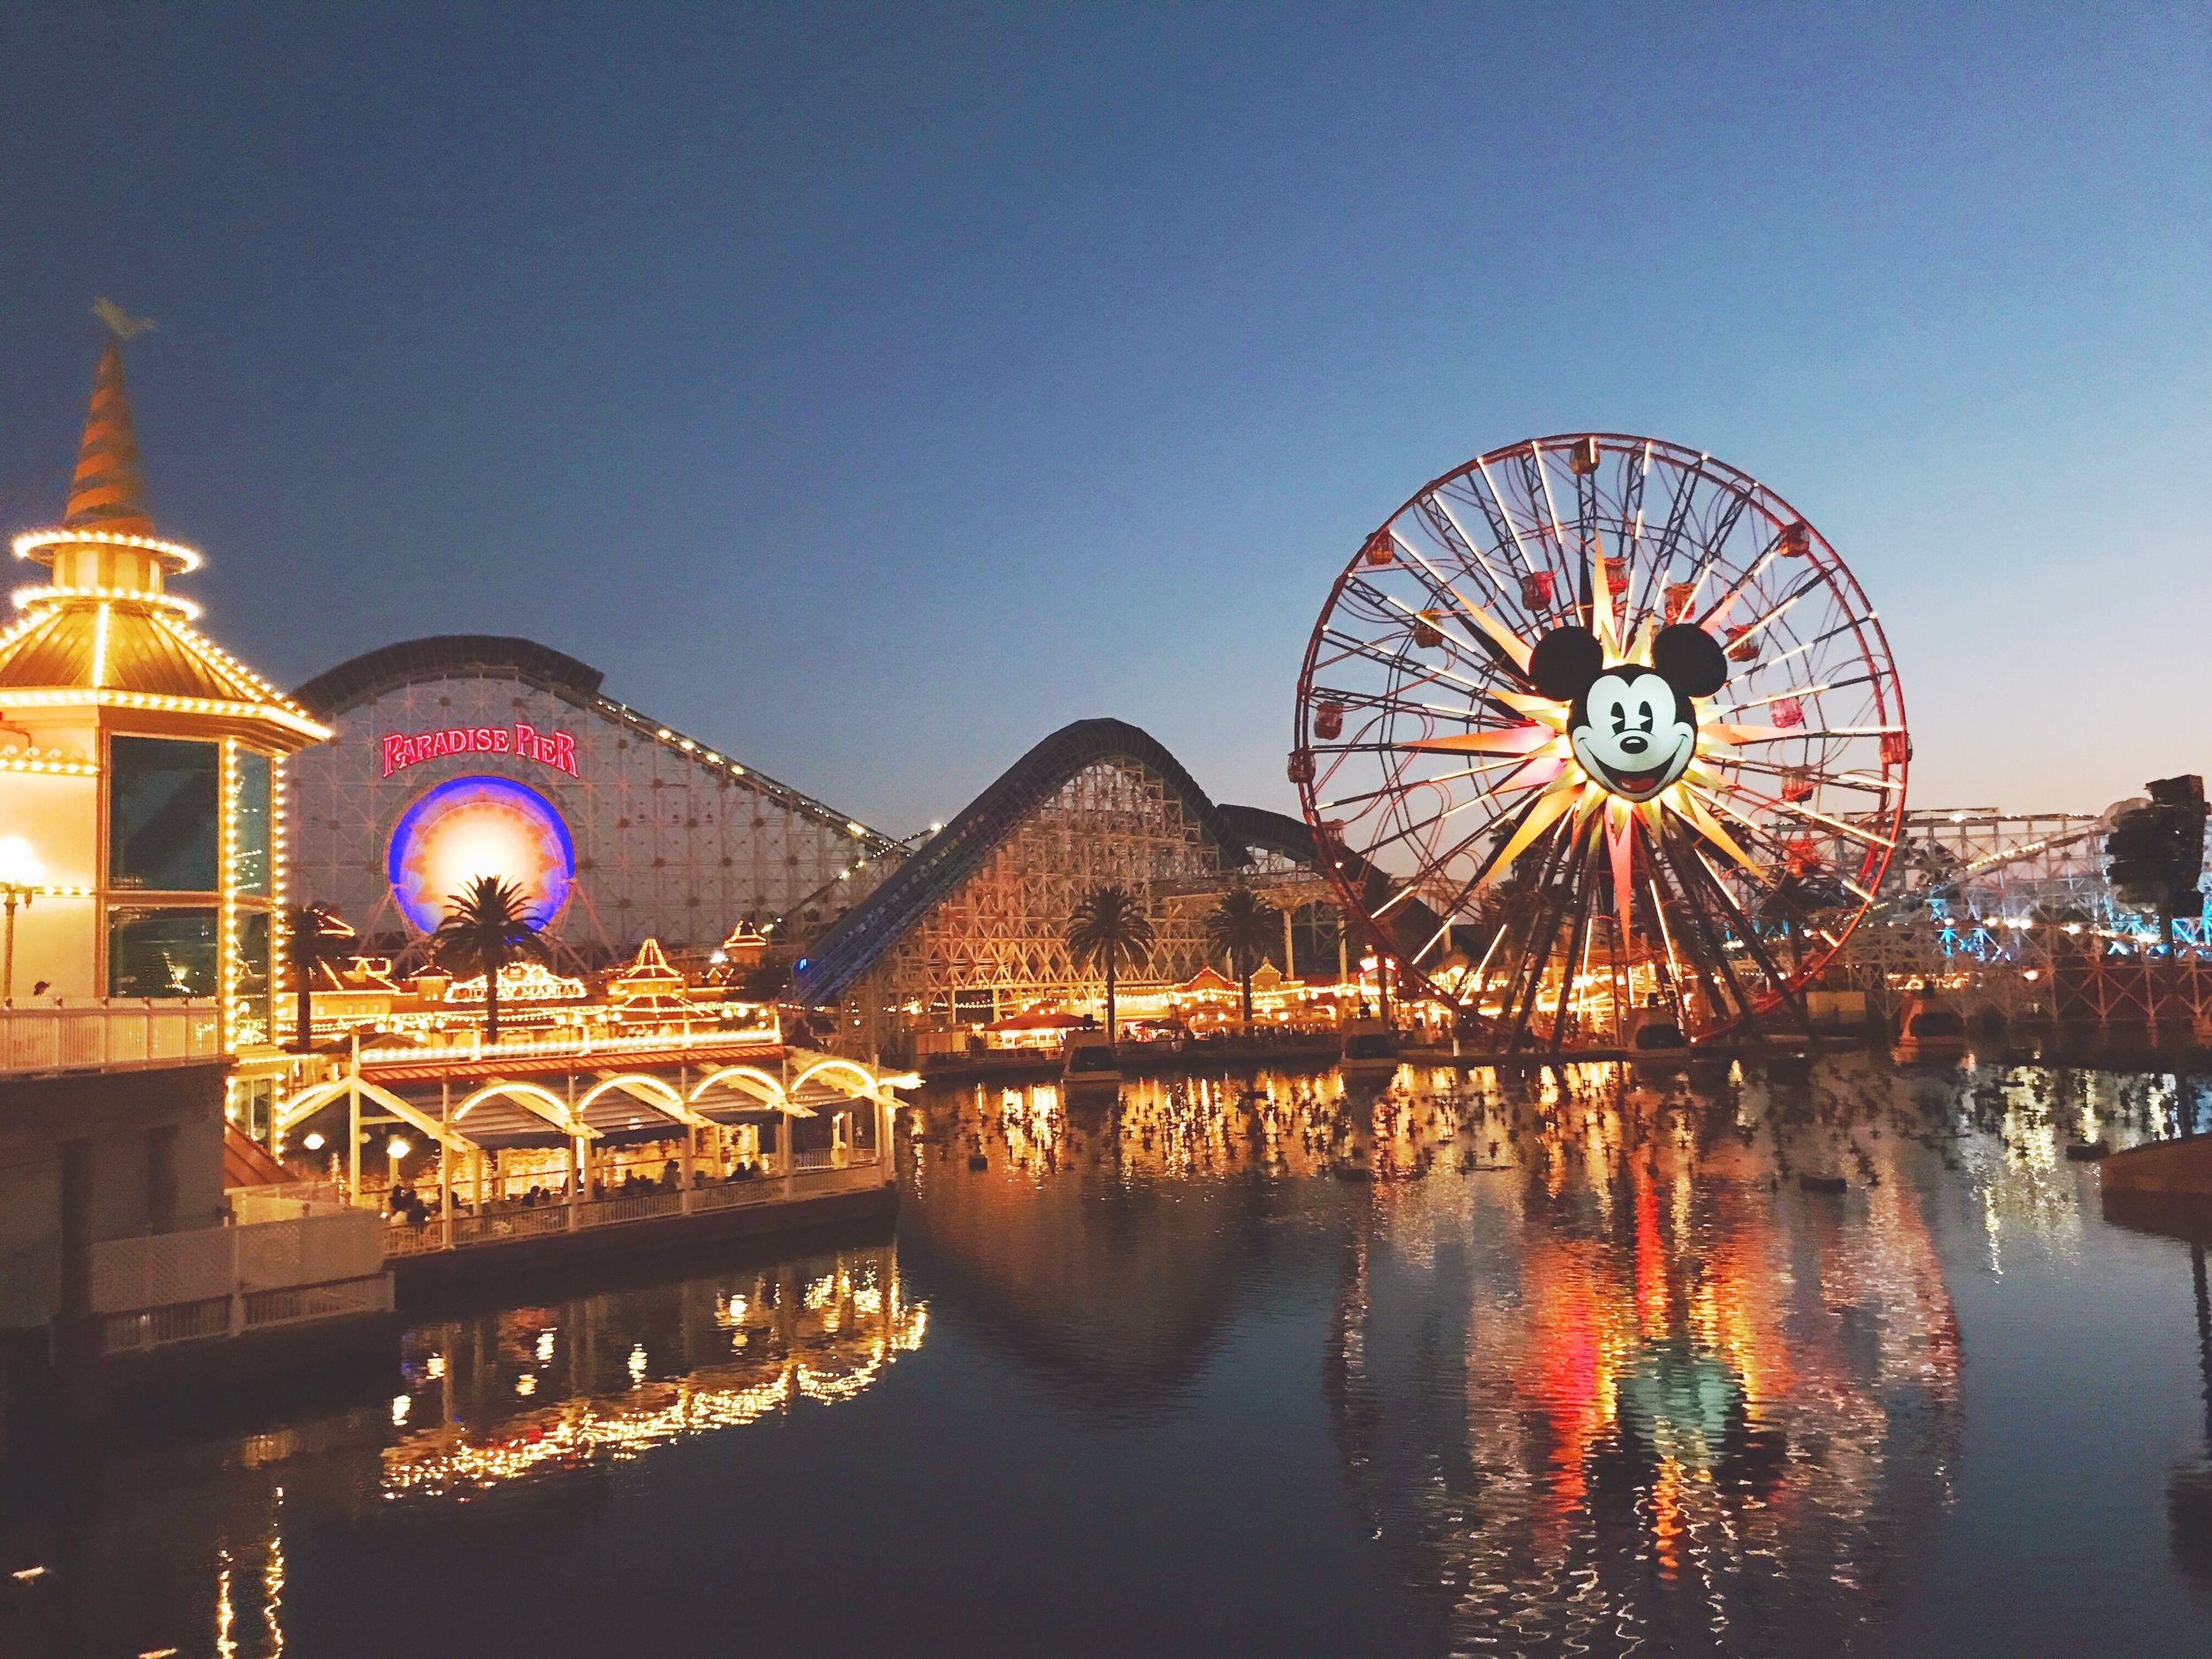 PARADISE PIER - BEFORE